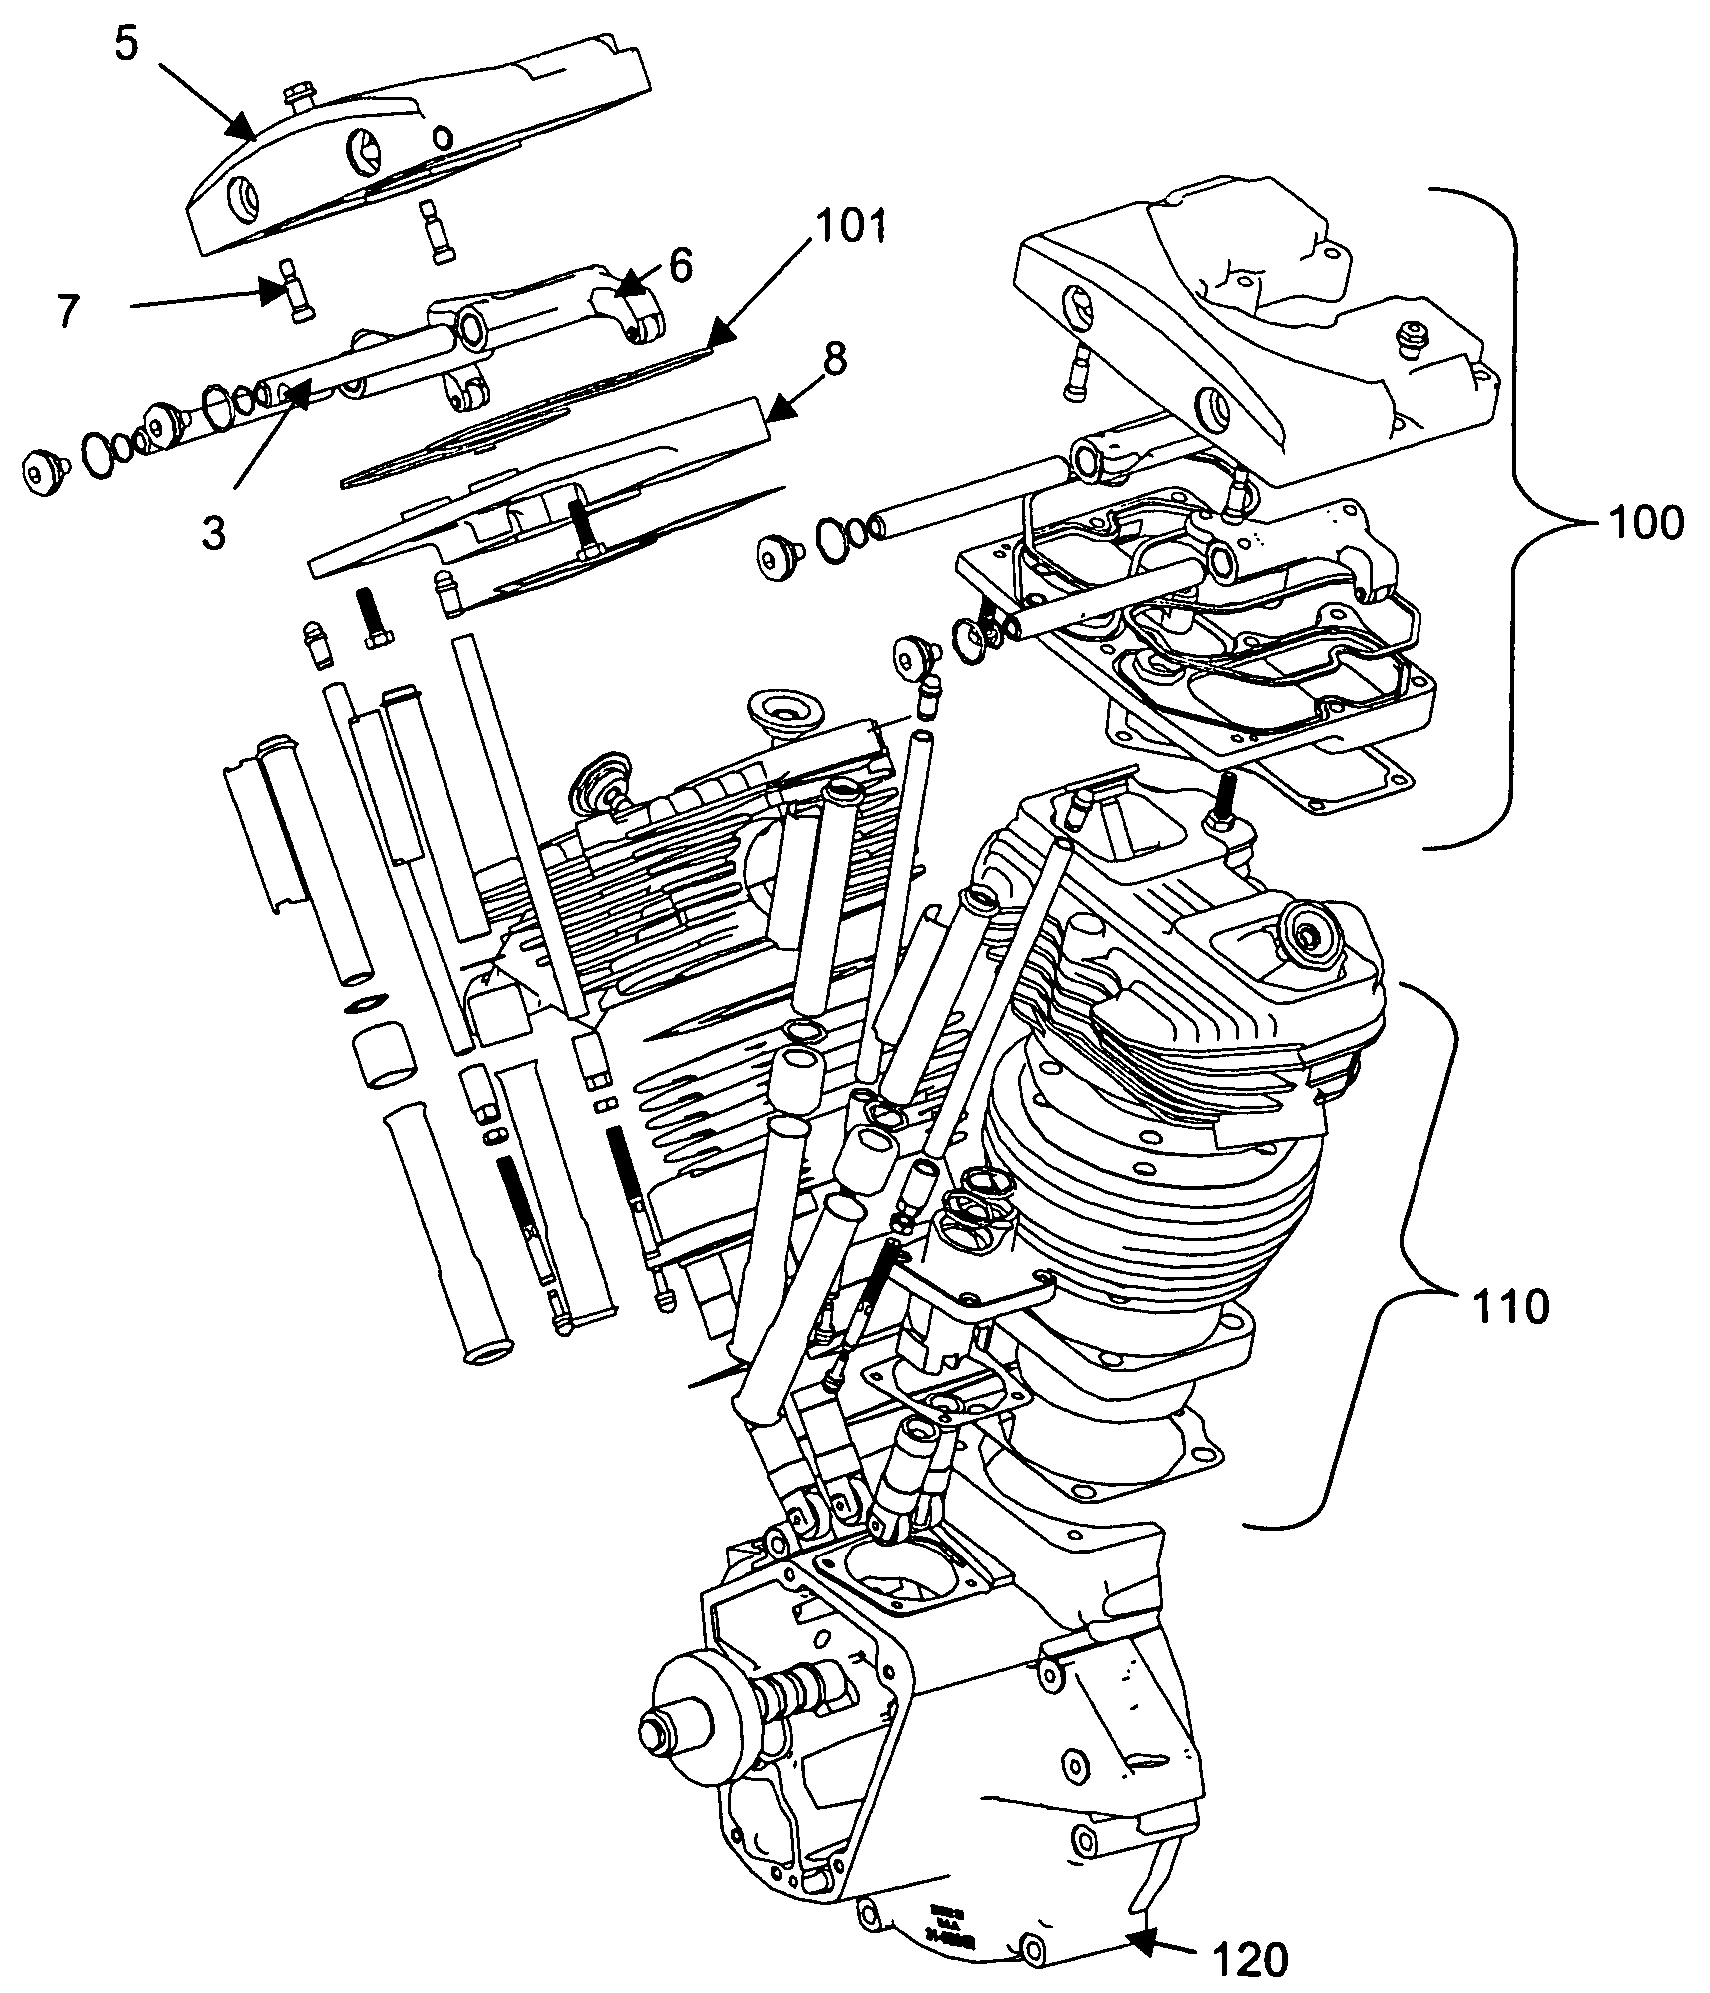 WRG-7489] Harley Shovelhead Engine Diagram